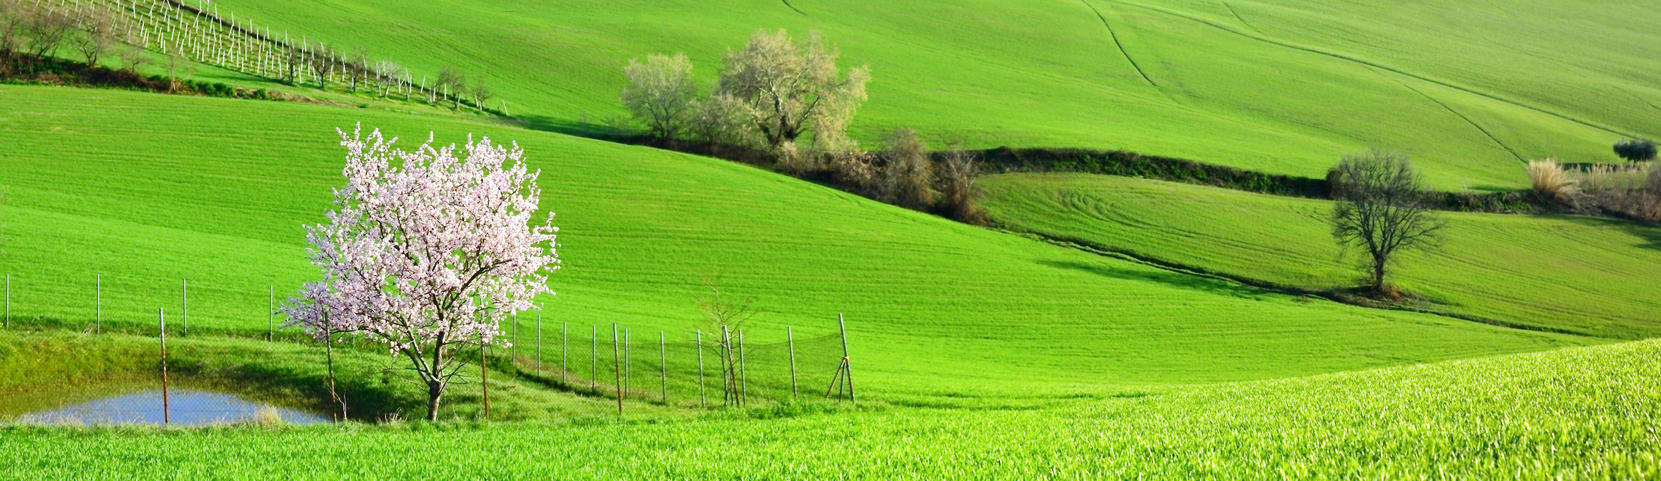 Country landscape by Alex-Br